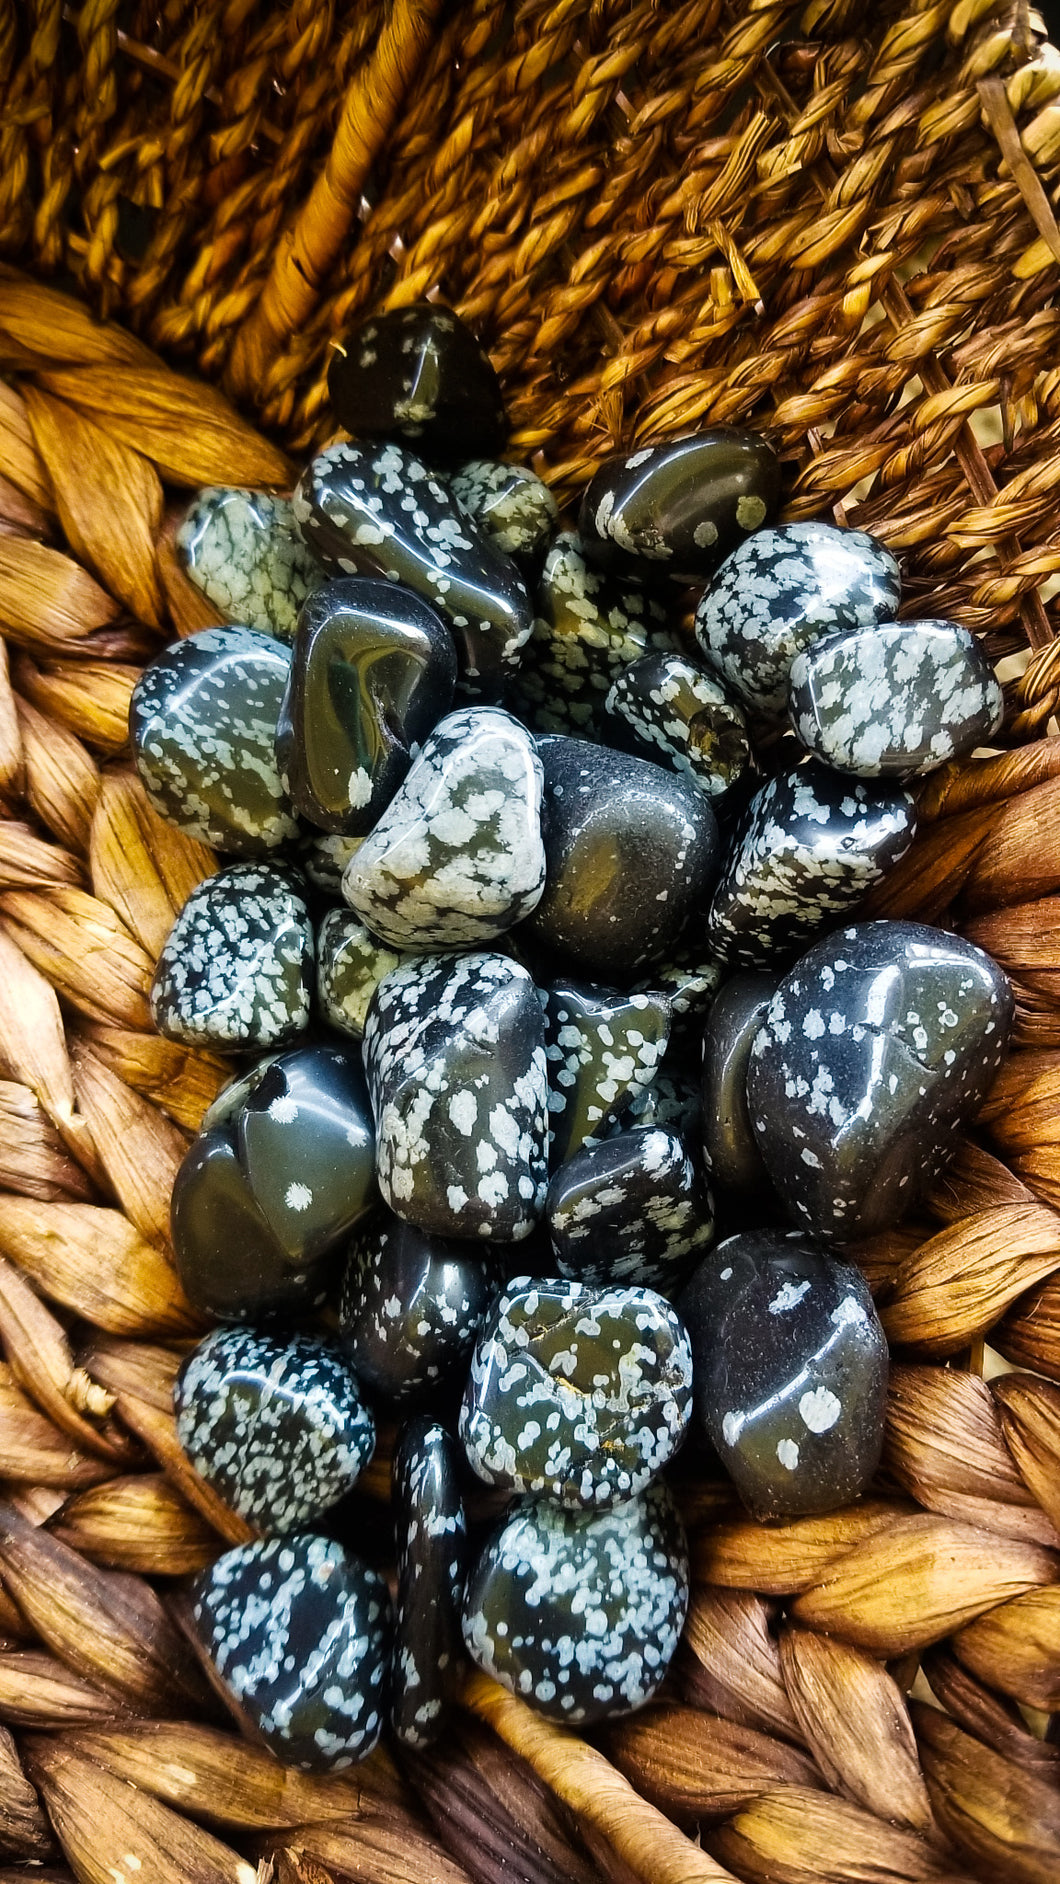 Snowflake Obsidian Crystal Tumble || Grounding to Heart of the Earth || Protection